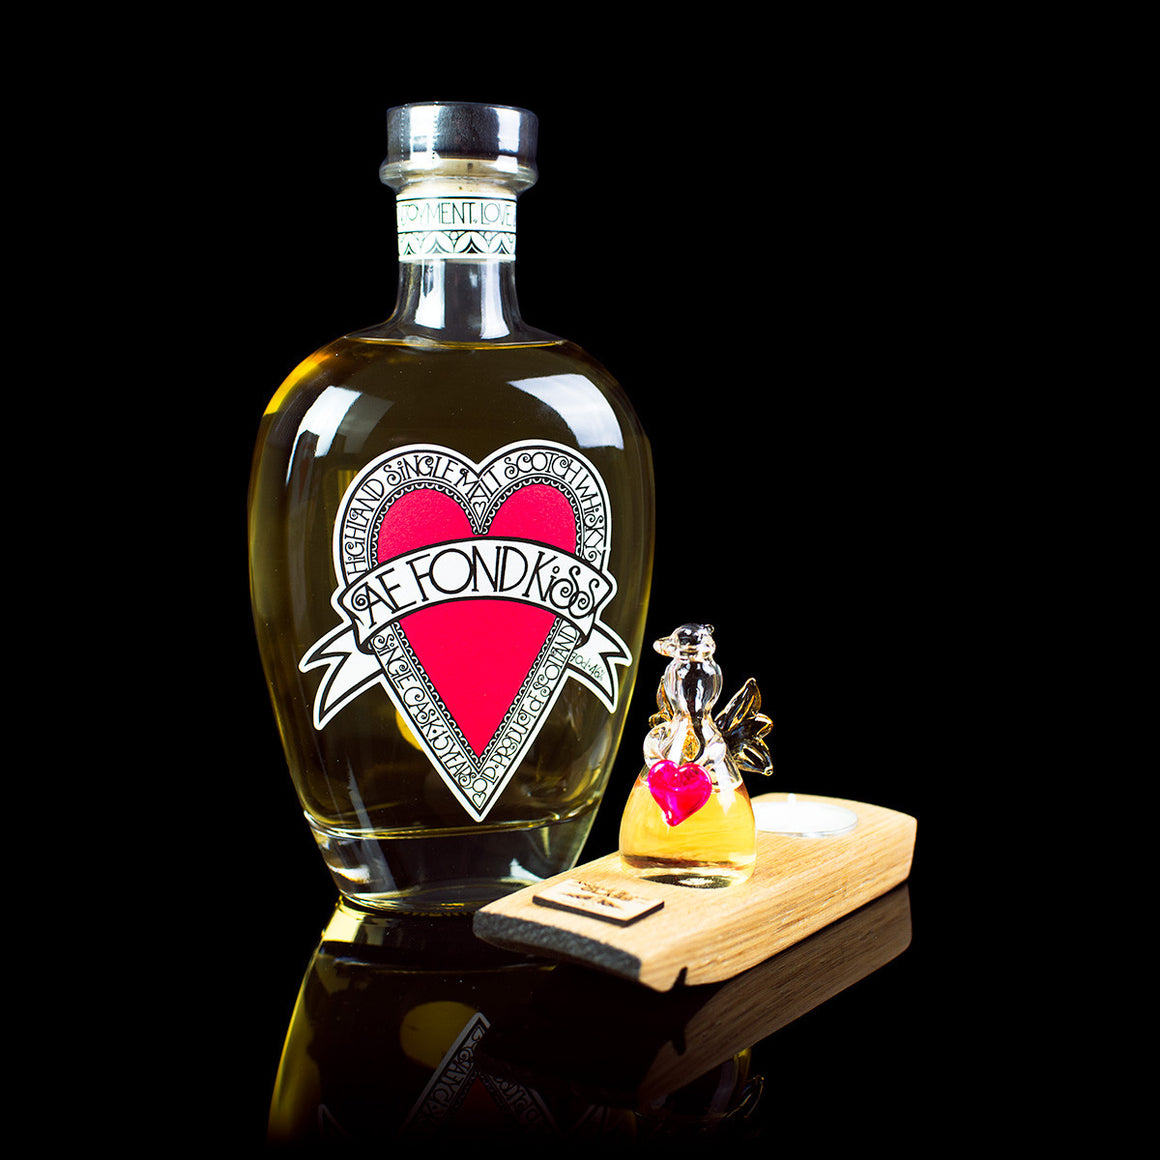 Ae Fond Kiss limited edition whisky gift by Angels' Share Glass